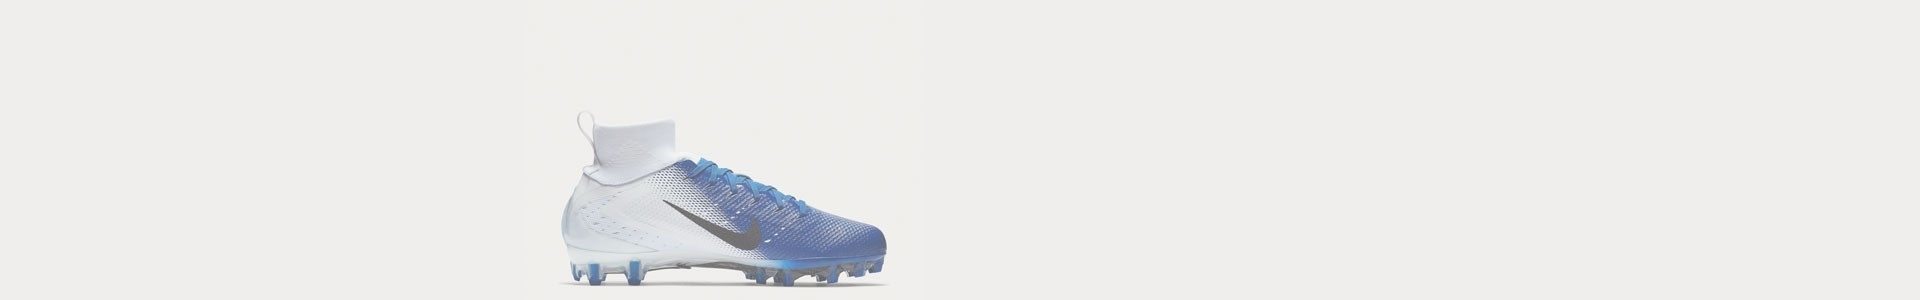 American Football Cleats for Men online | Buy Now on AnyGivenSunday.Shop